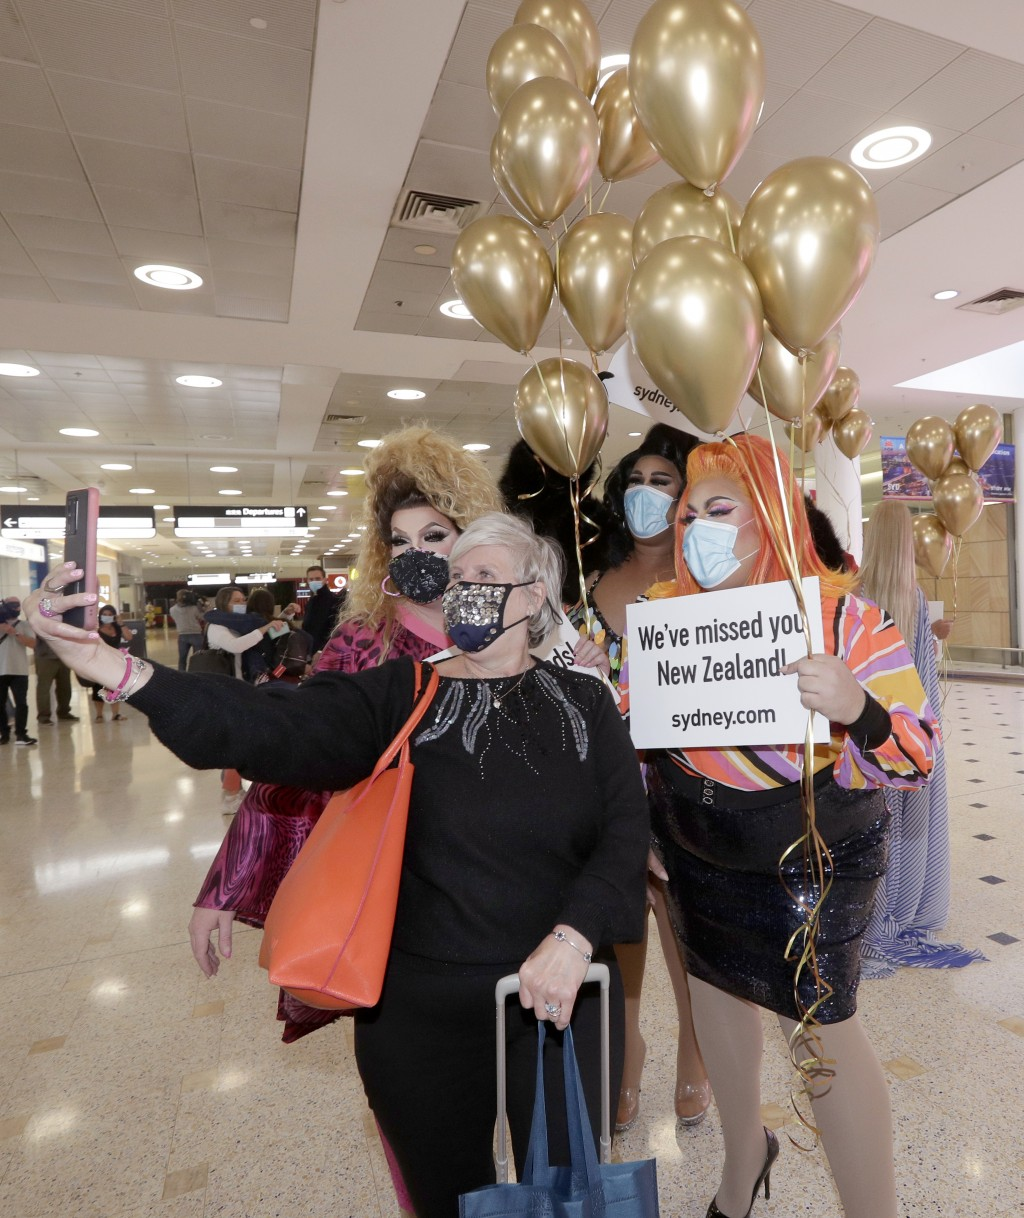 A passenger from New Zealand, second left, poses with drag queens as they welcome her at Sydney Airport in Sydney, Australia, Monday, April 19, 2021, ...